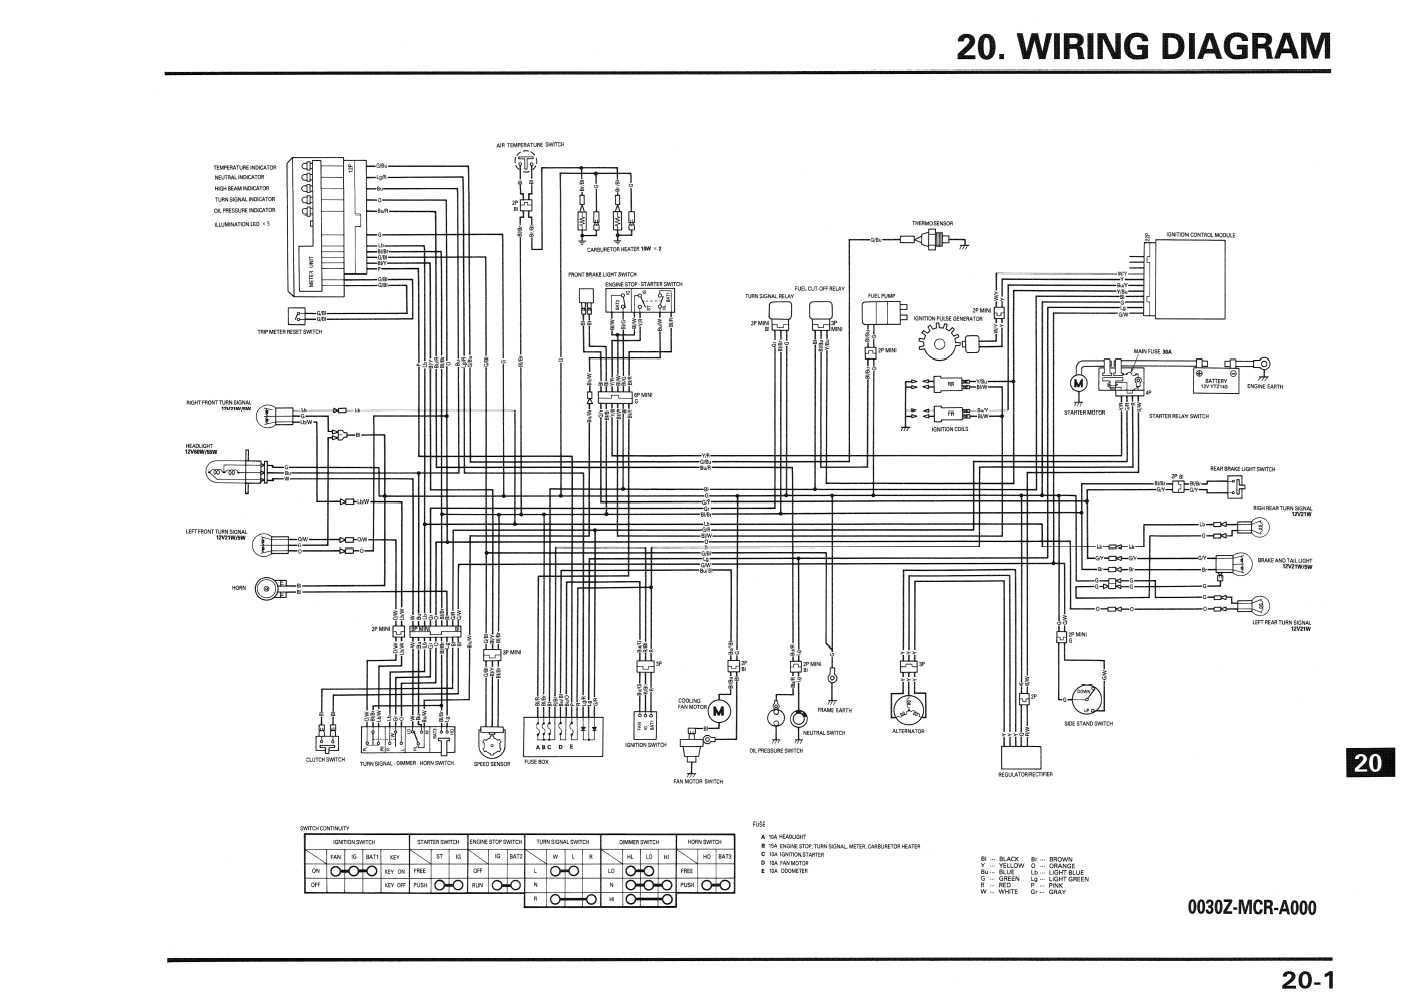 layout diagram of house wiring with Page348 on S Plan Twin Zone Central Heating System Electrical Control Connections And Wiring Diagram together with 1996 7 3 Powerstroke Turbo Diesel Engine Ford F250 F350 F450 F150 together with Heating A Pool Zmaz83jfzraw besides The Importance Of The Garage Door Spring At Home in addition 300zx Engine Refitting.